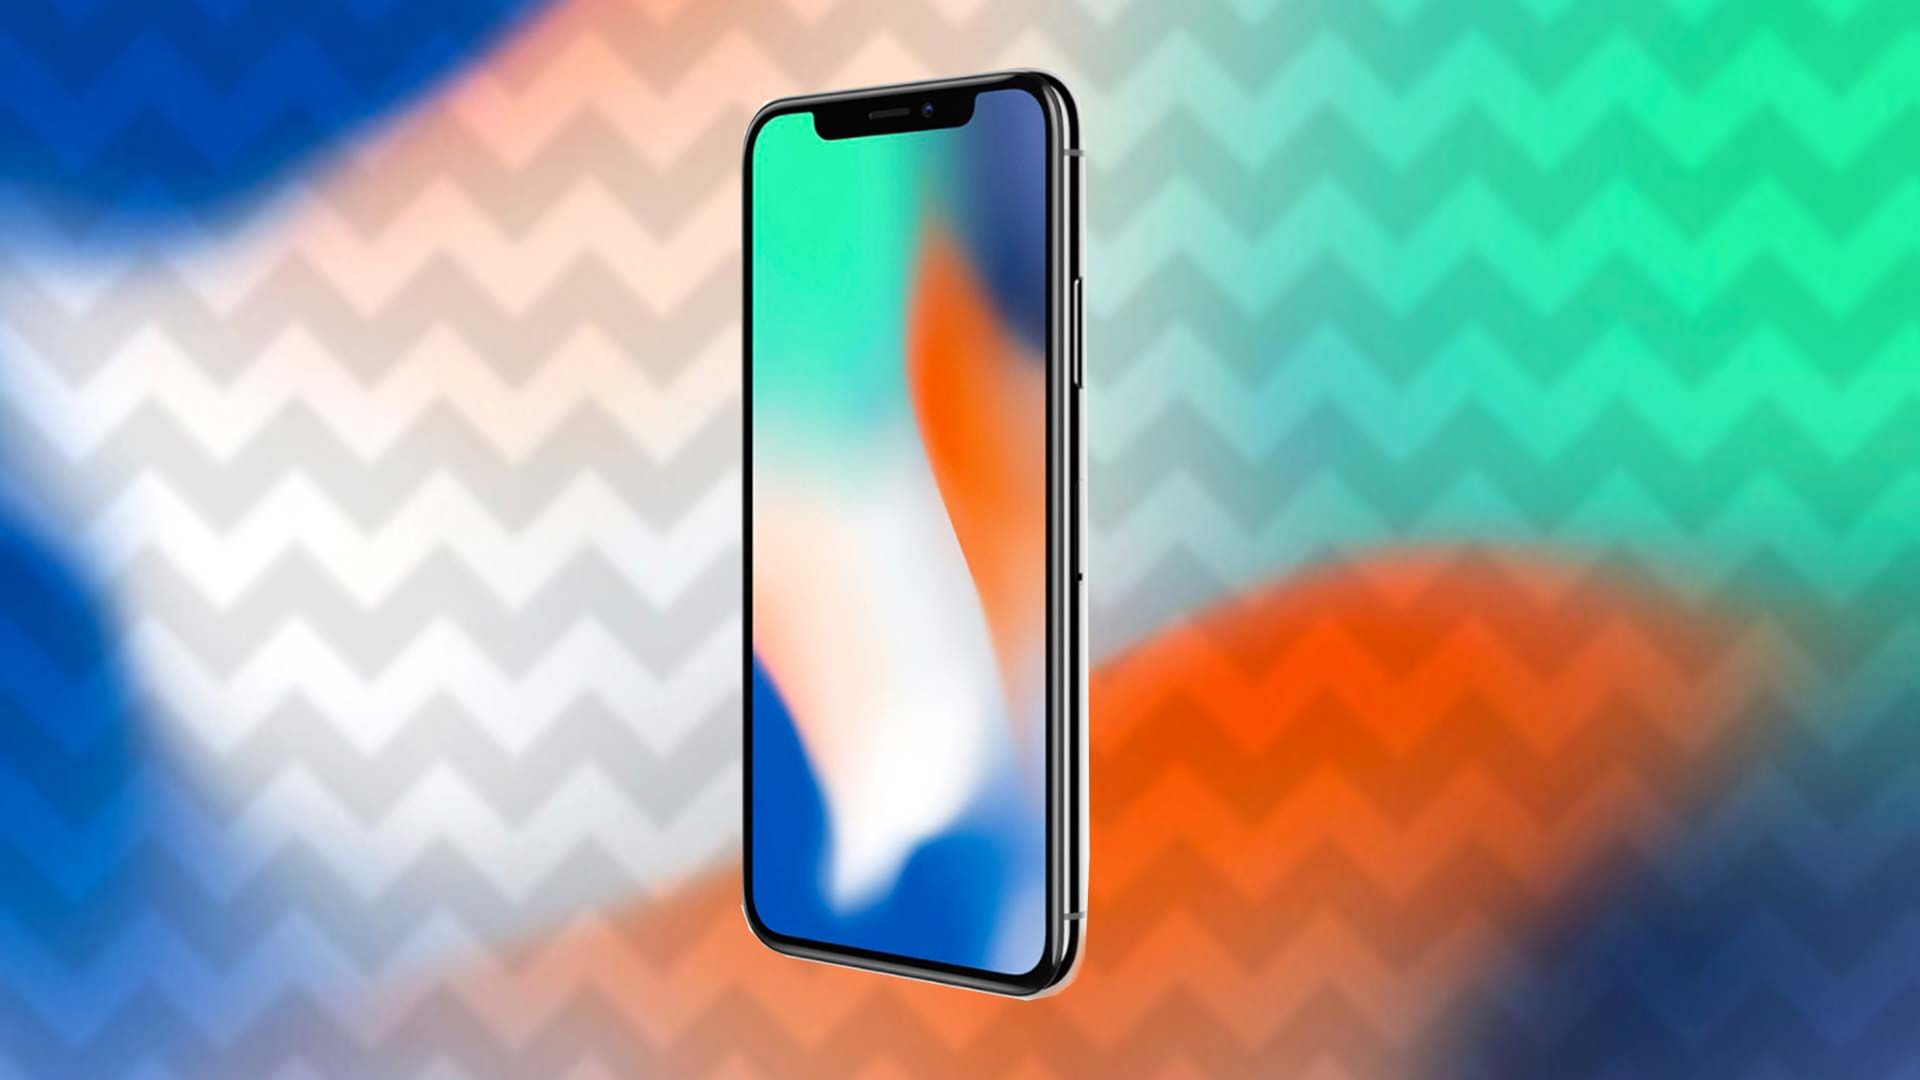 iPhoneX First Look Unboxing Face ID Setup Gestures Design and